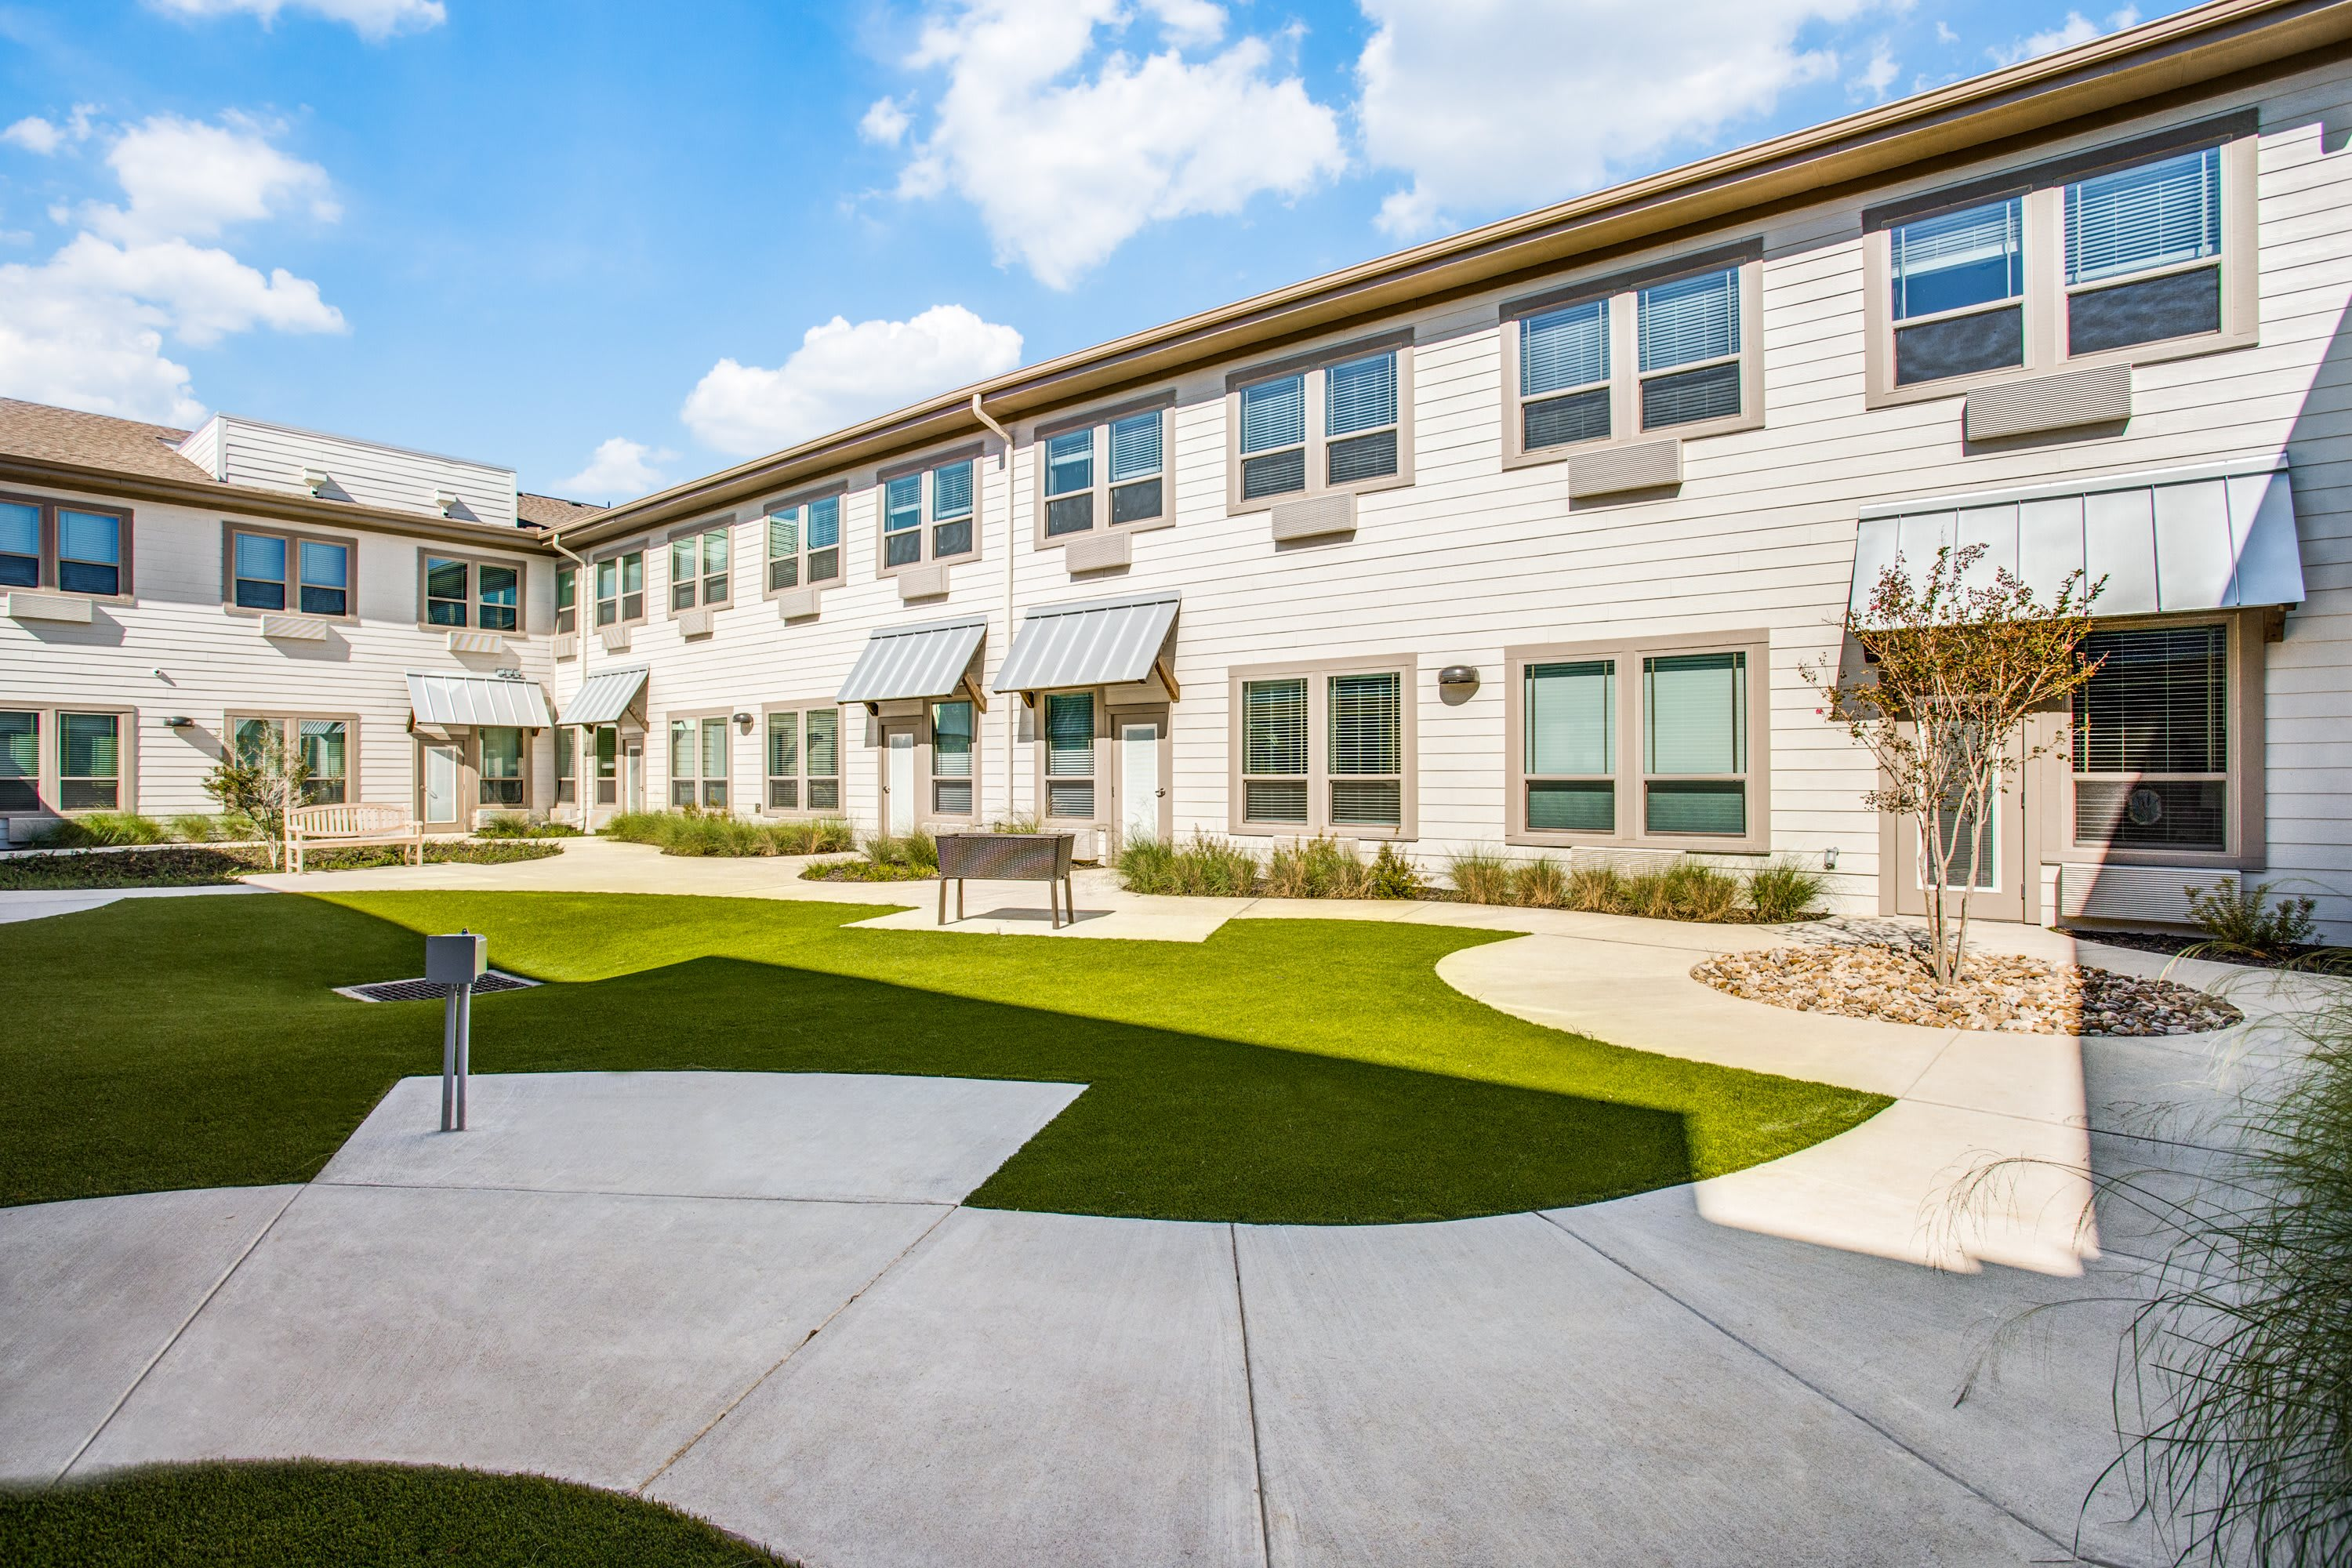 Photo 1 of StoneCreek Senior Living and Memory Care at North Richland Hills